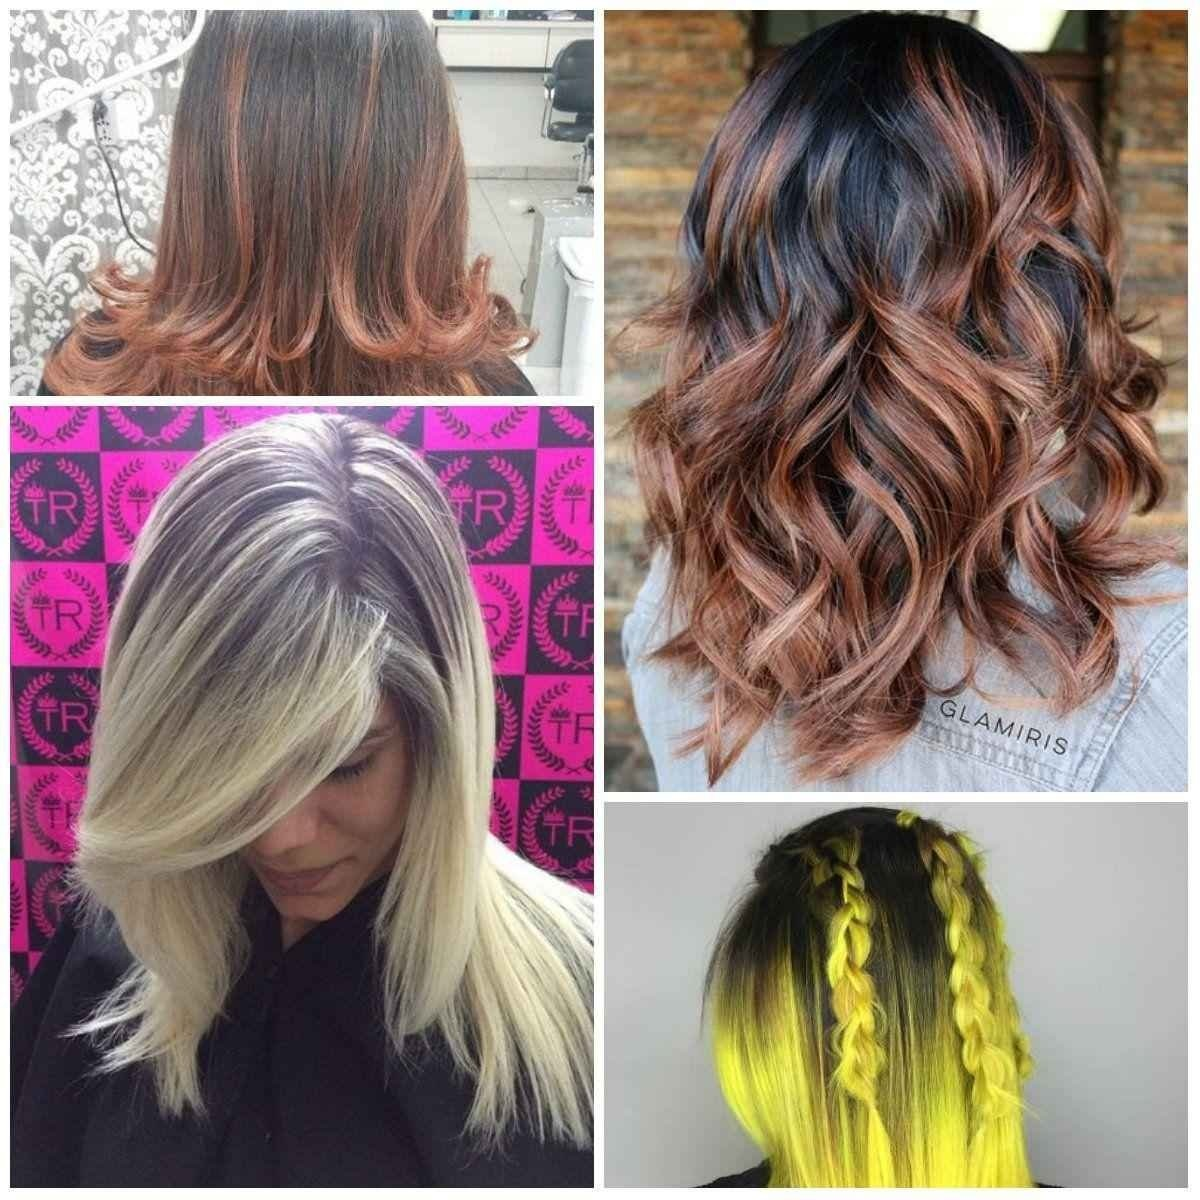 hair color two tone best of two tone hair color ideas - hairstyles ideas